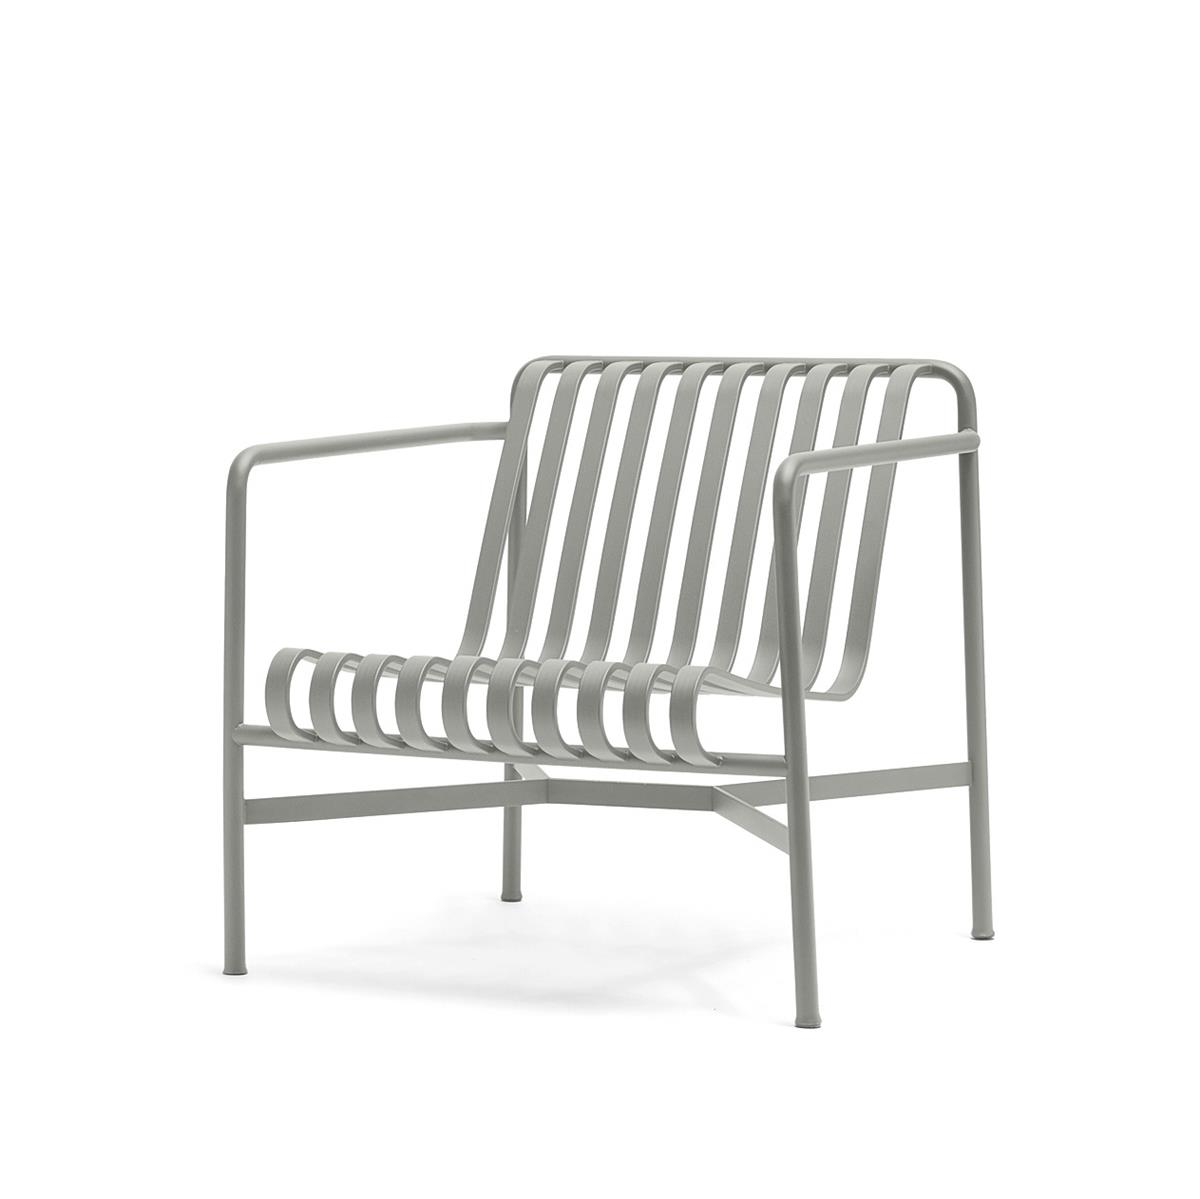 Palissade Lounge Chair Low - Sky Grey